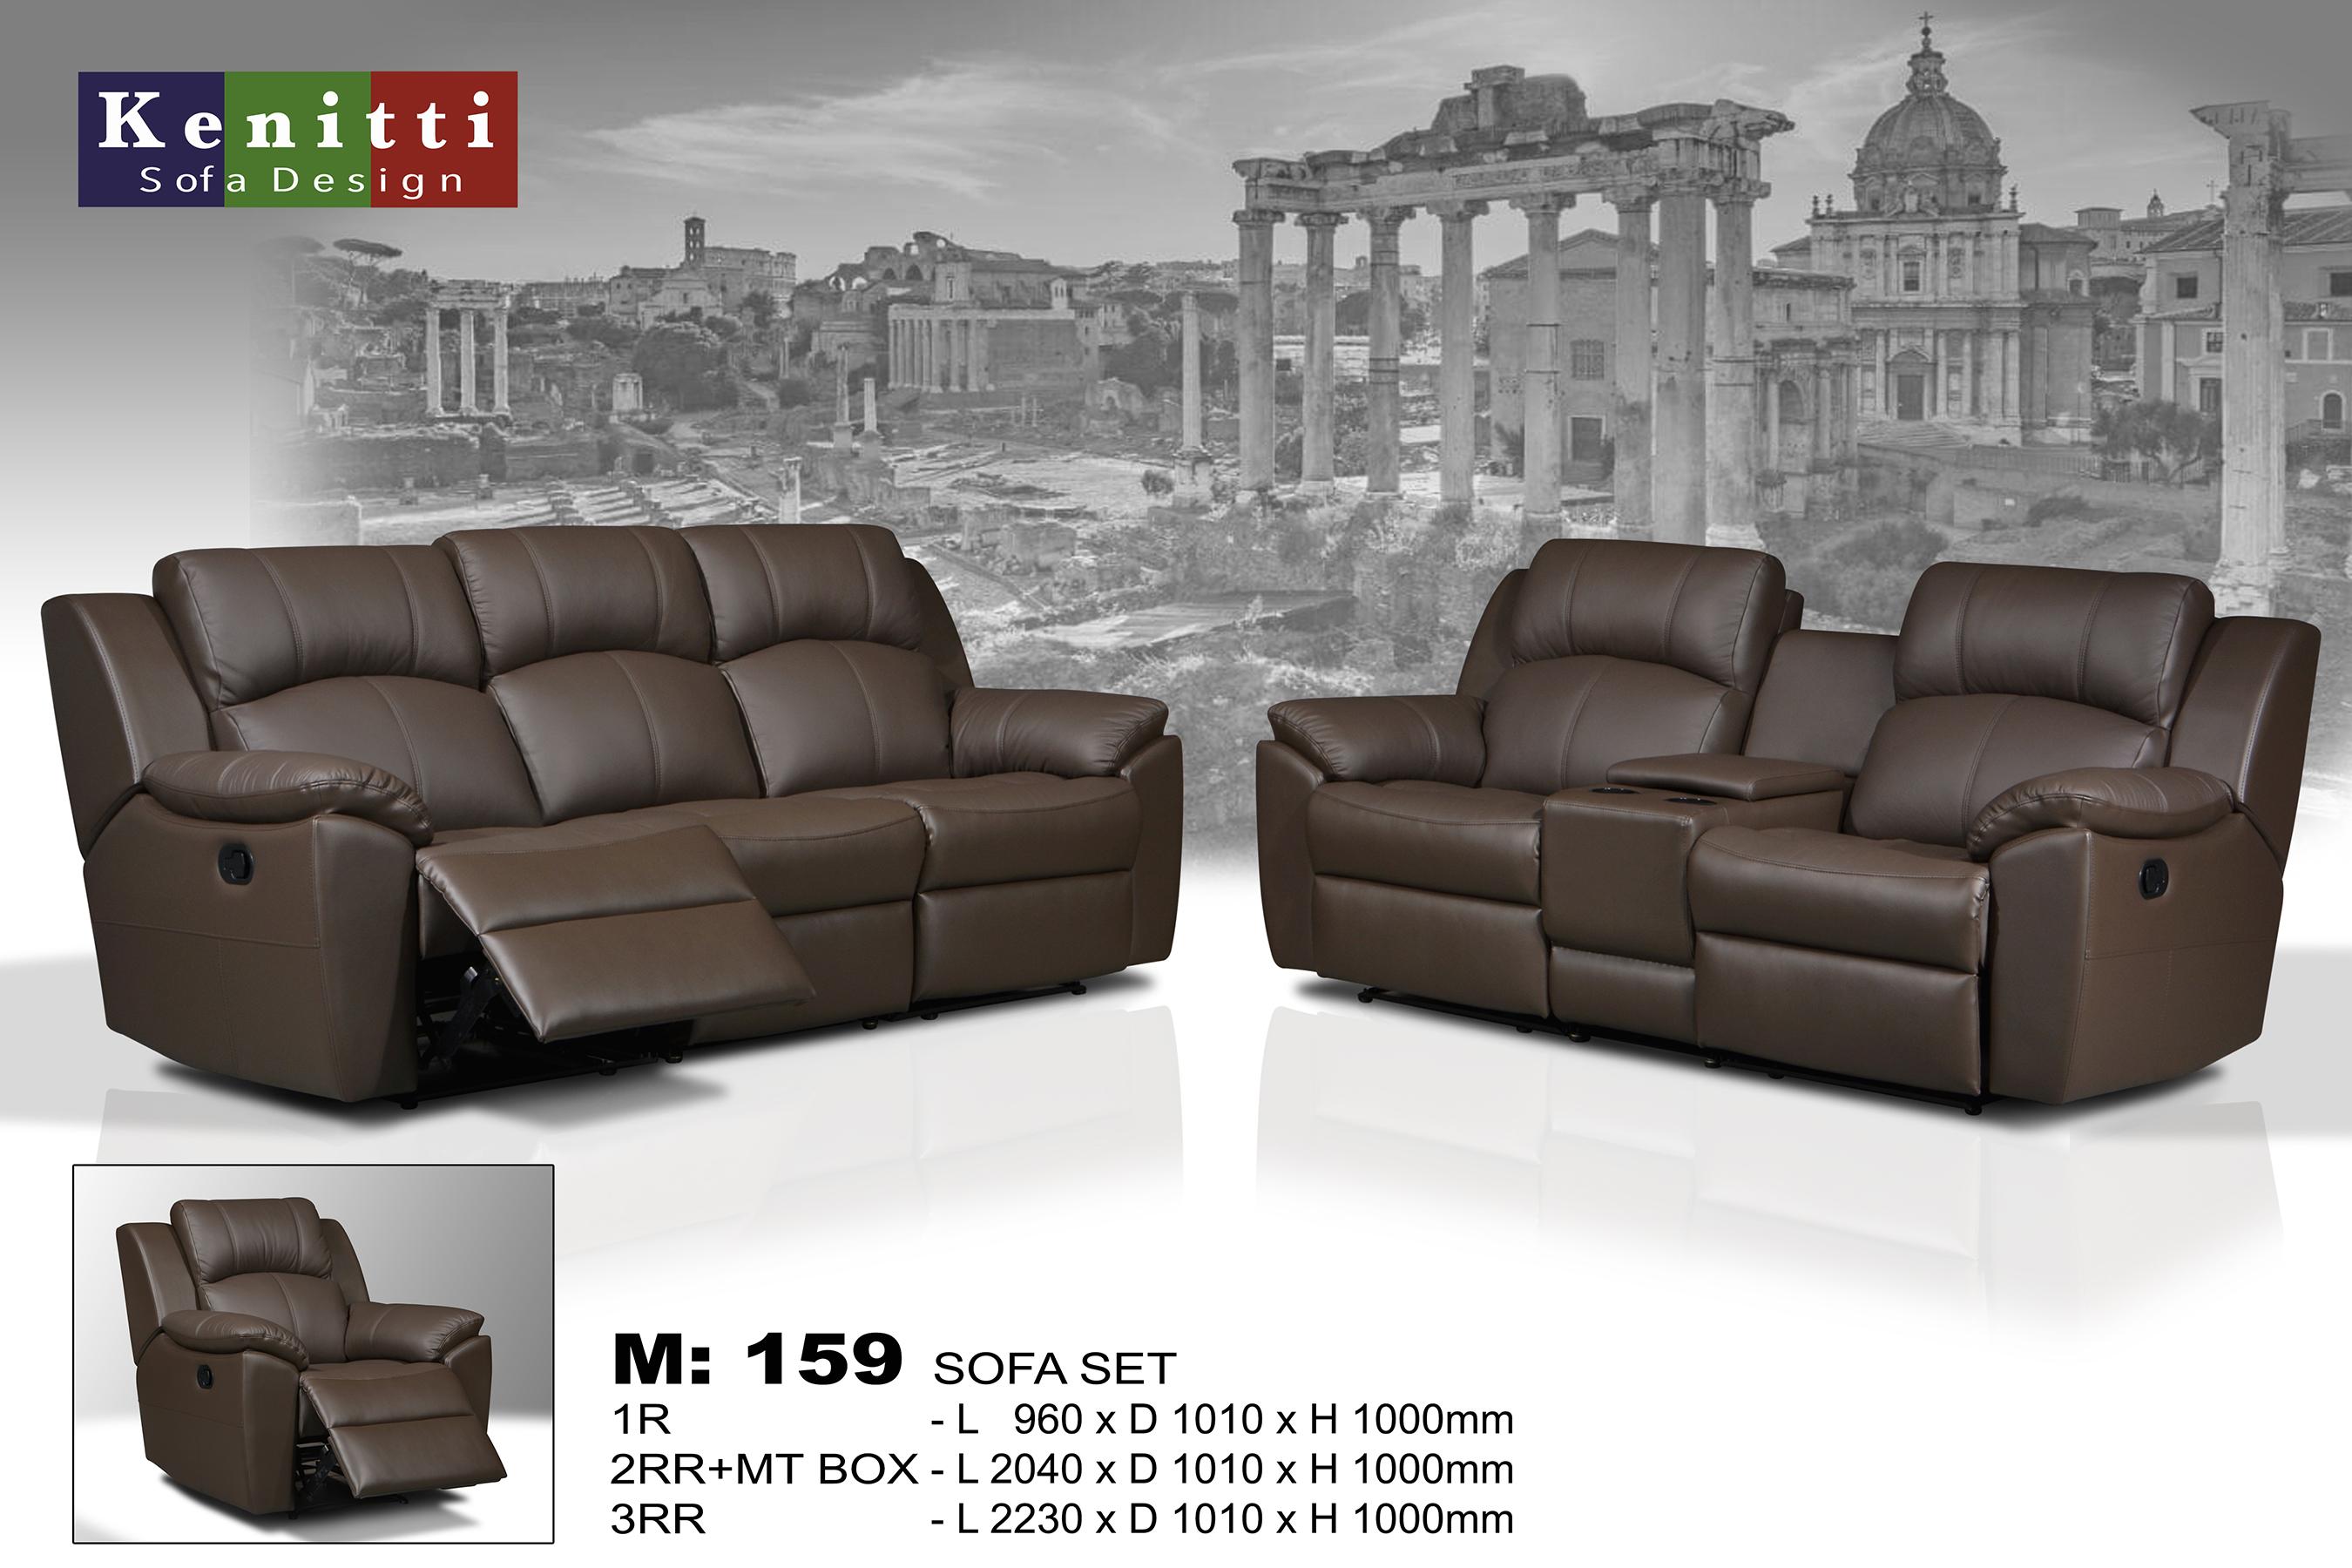 Kenitti Sofa Design-Model 159 (US).jpg